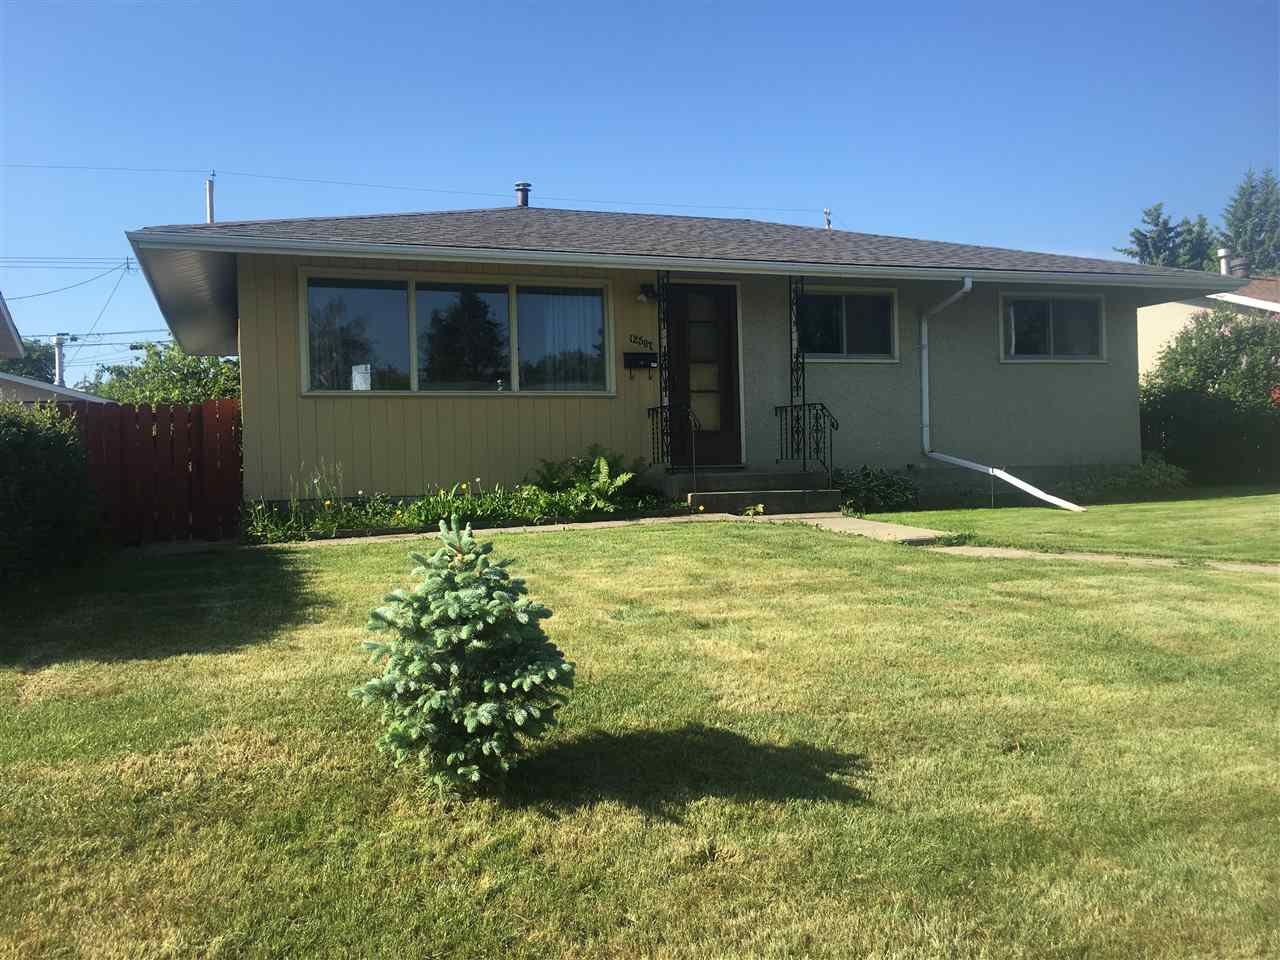 Main Photo: 12507 136 Avenue in Edmonton: Zone 01 House for sale : MLS(r) # E4061140